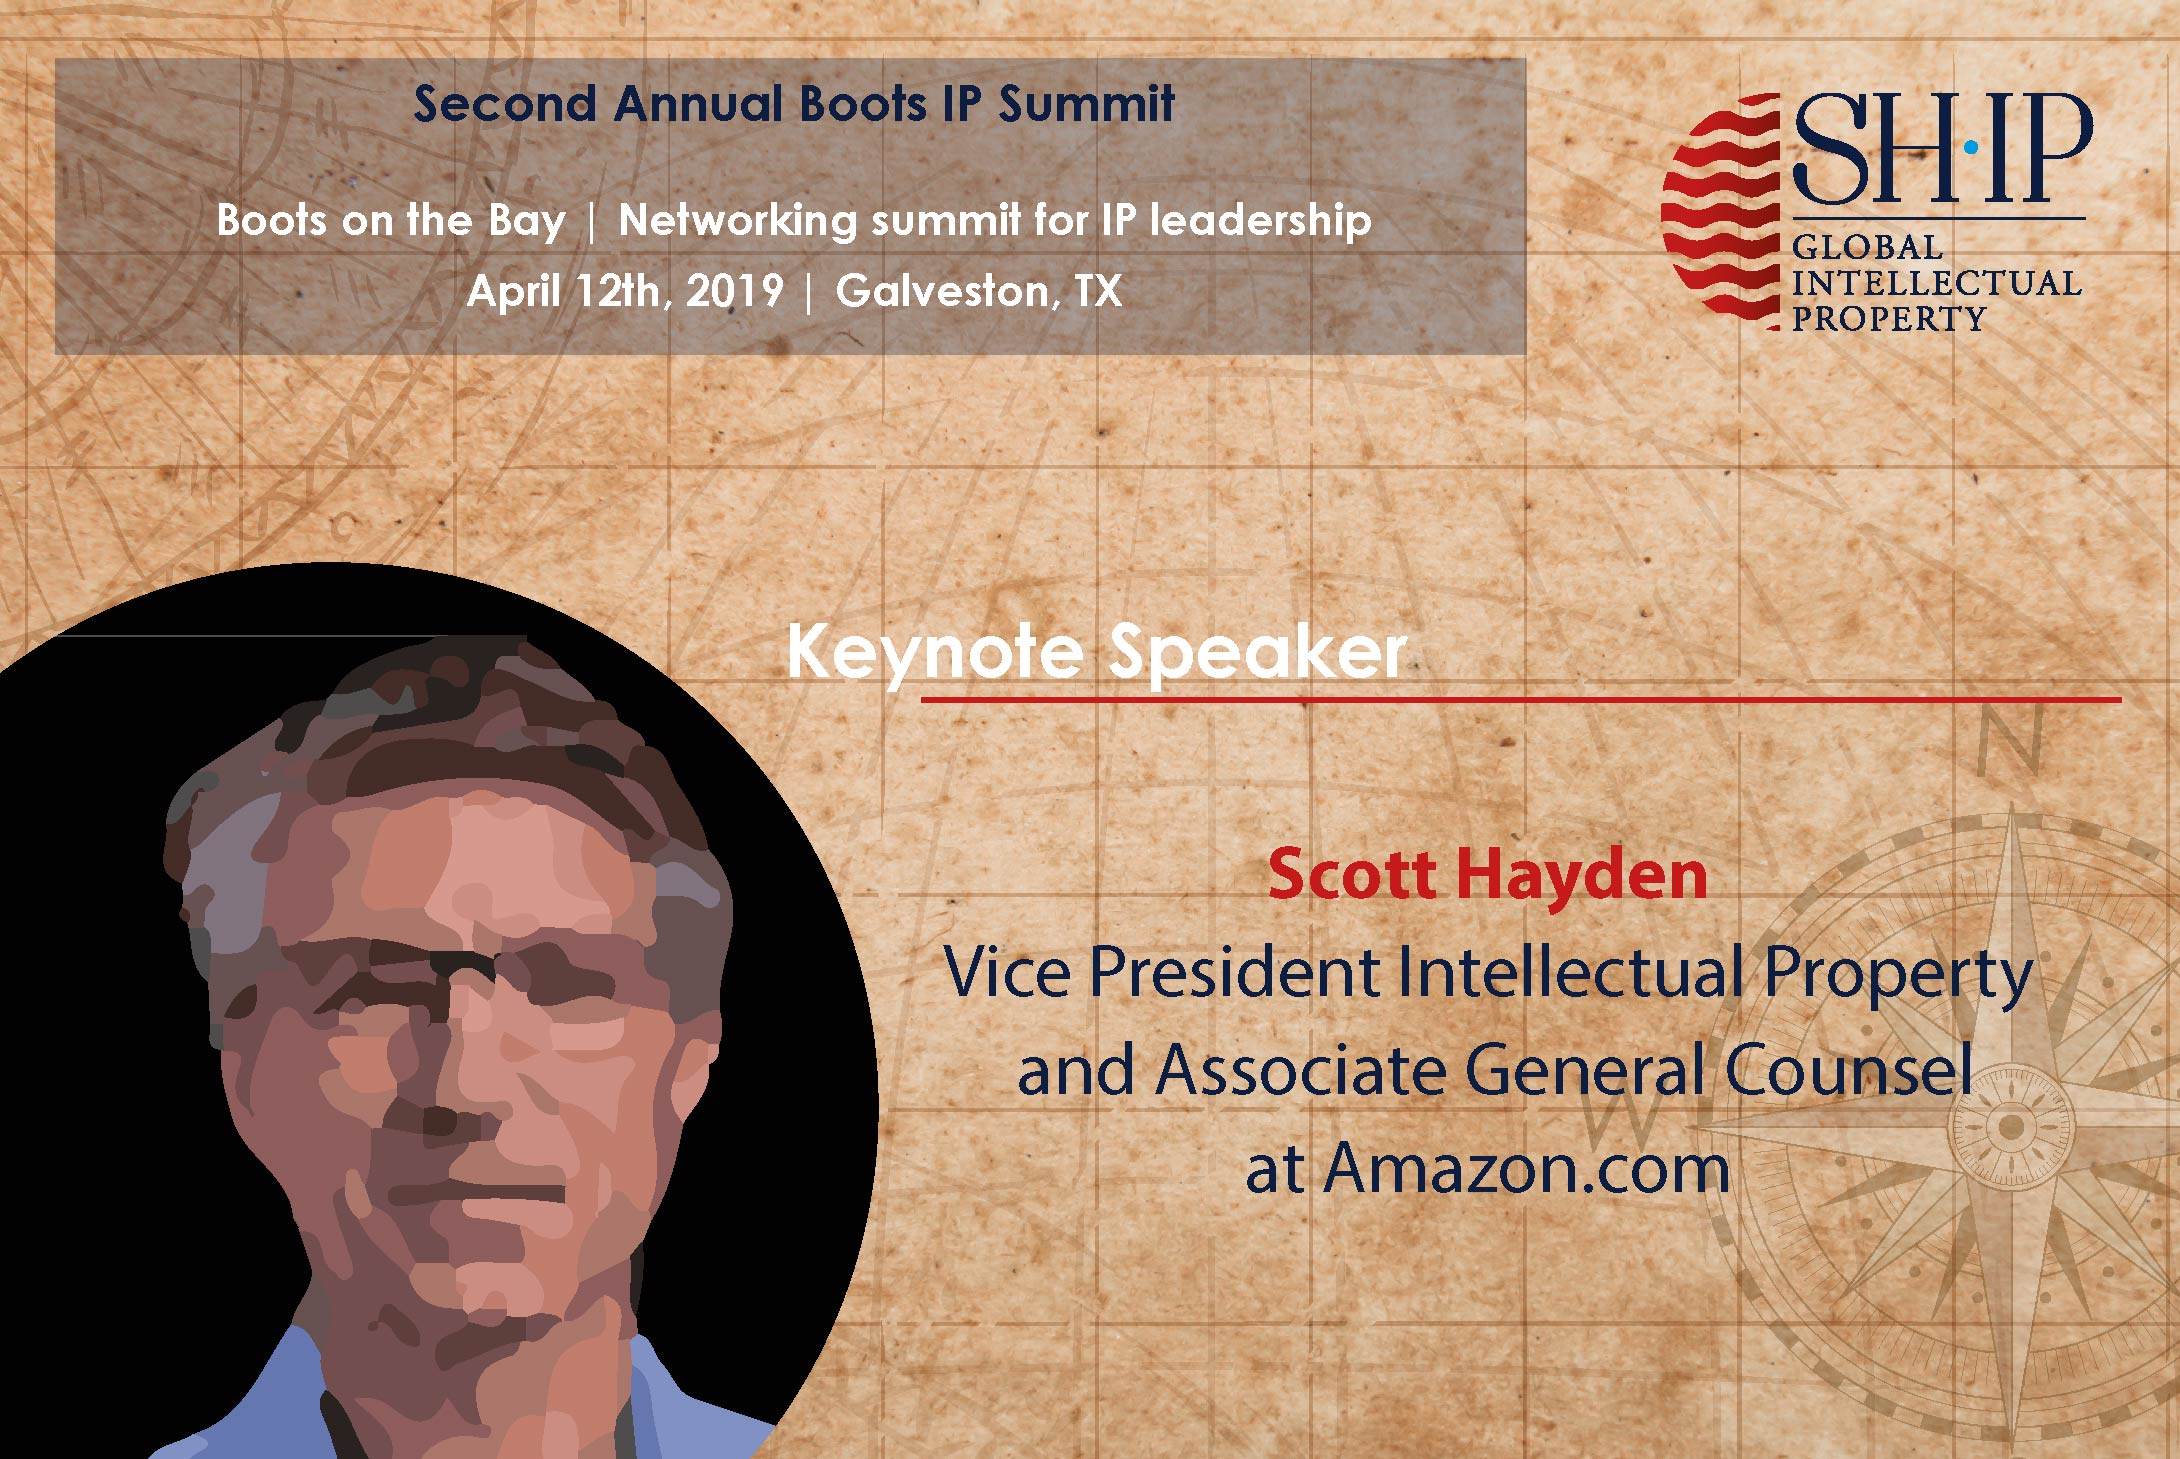 Third Keynote Speaker at Boots on the Bay IP Summit announced!